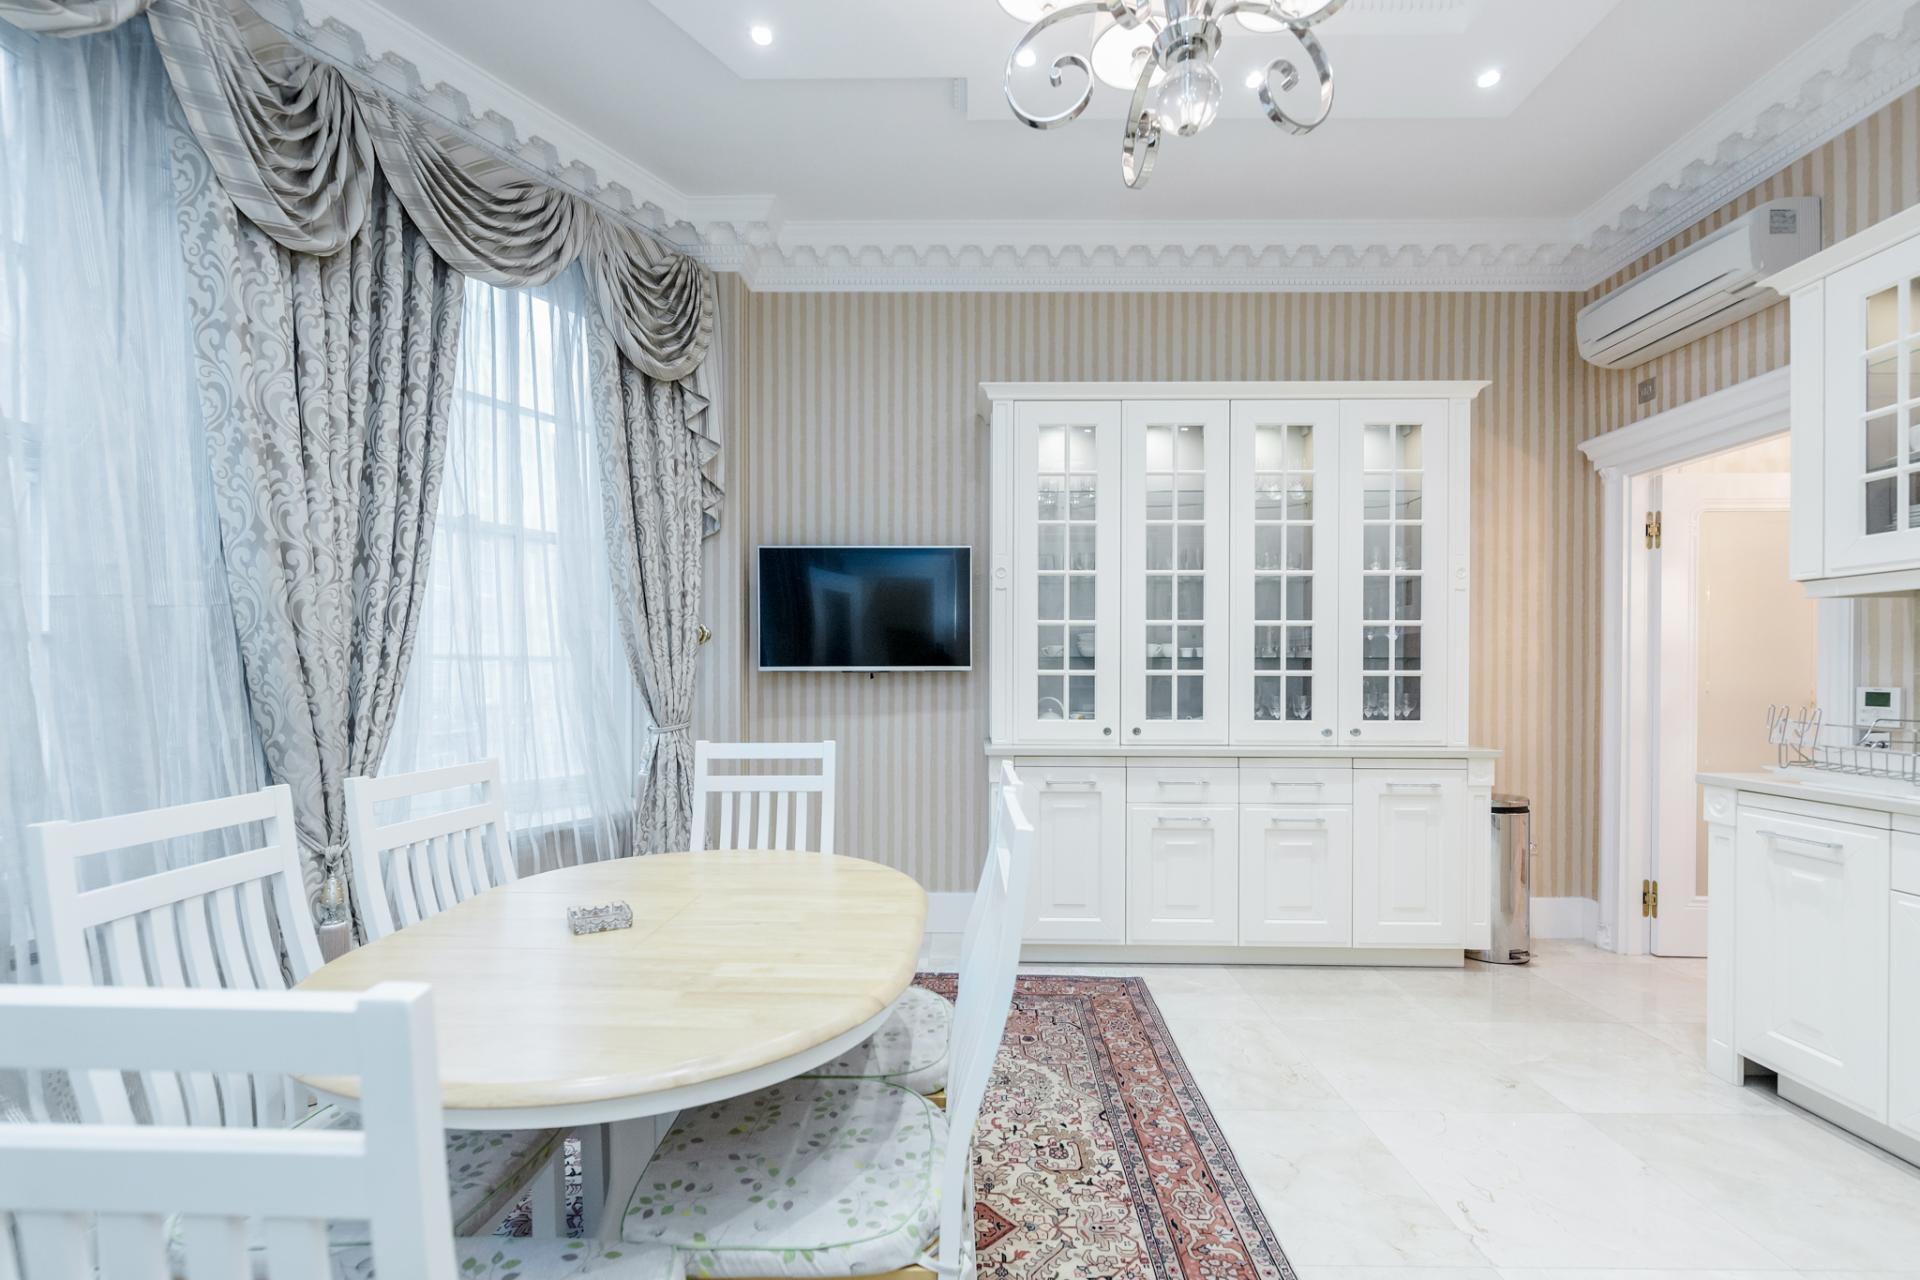 Dining area at Grosvenor Square Apartment, Mayfair, London